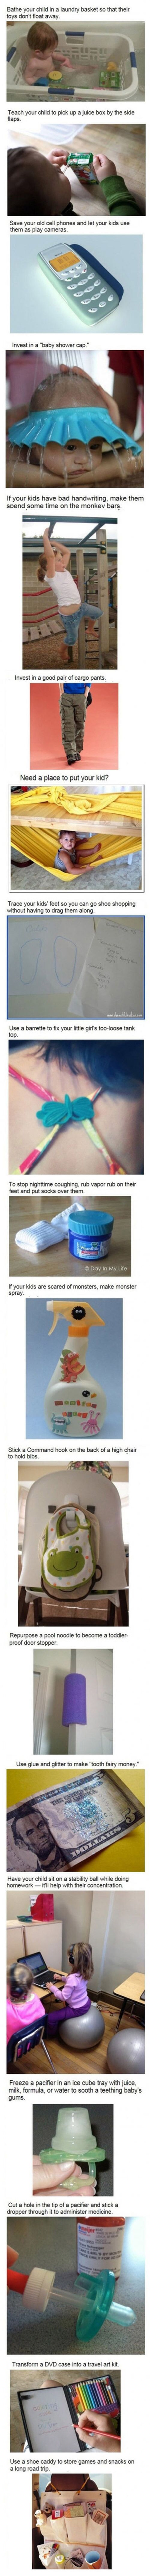 I don't have kids, but these all seem like cool ideas